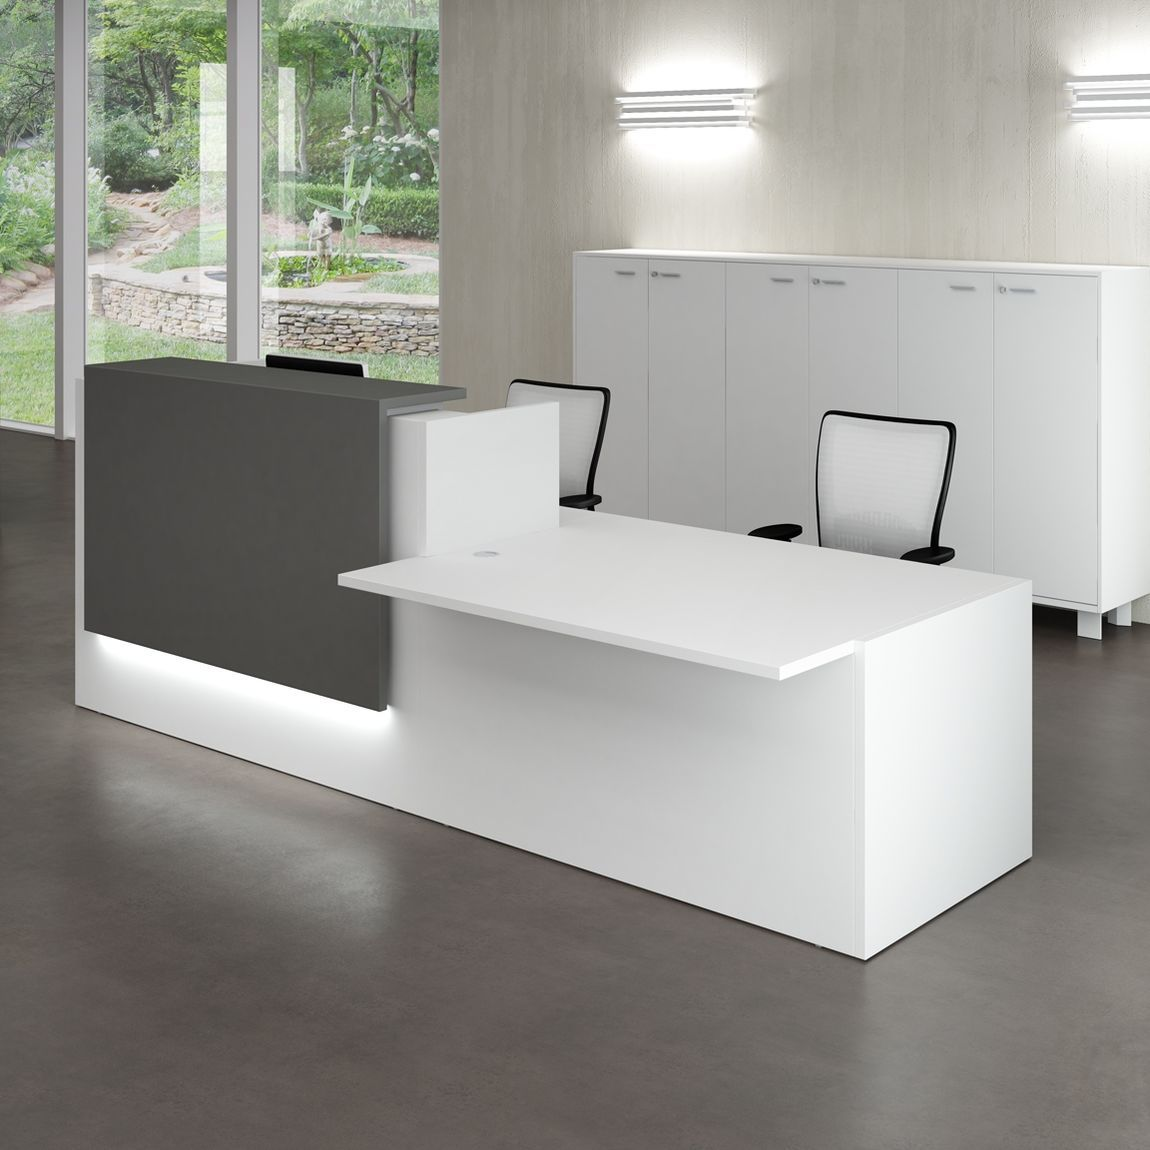 Reception Desk Furniture Front Office Furniture Office Furniture Modern Reception Desk Design